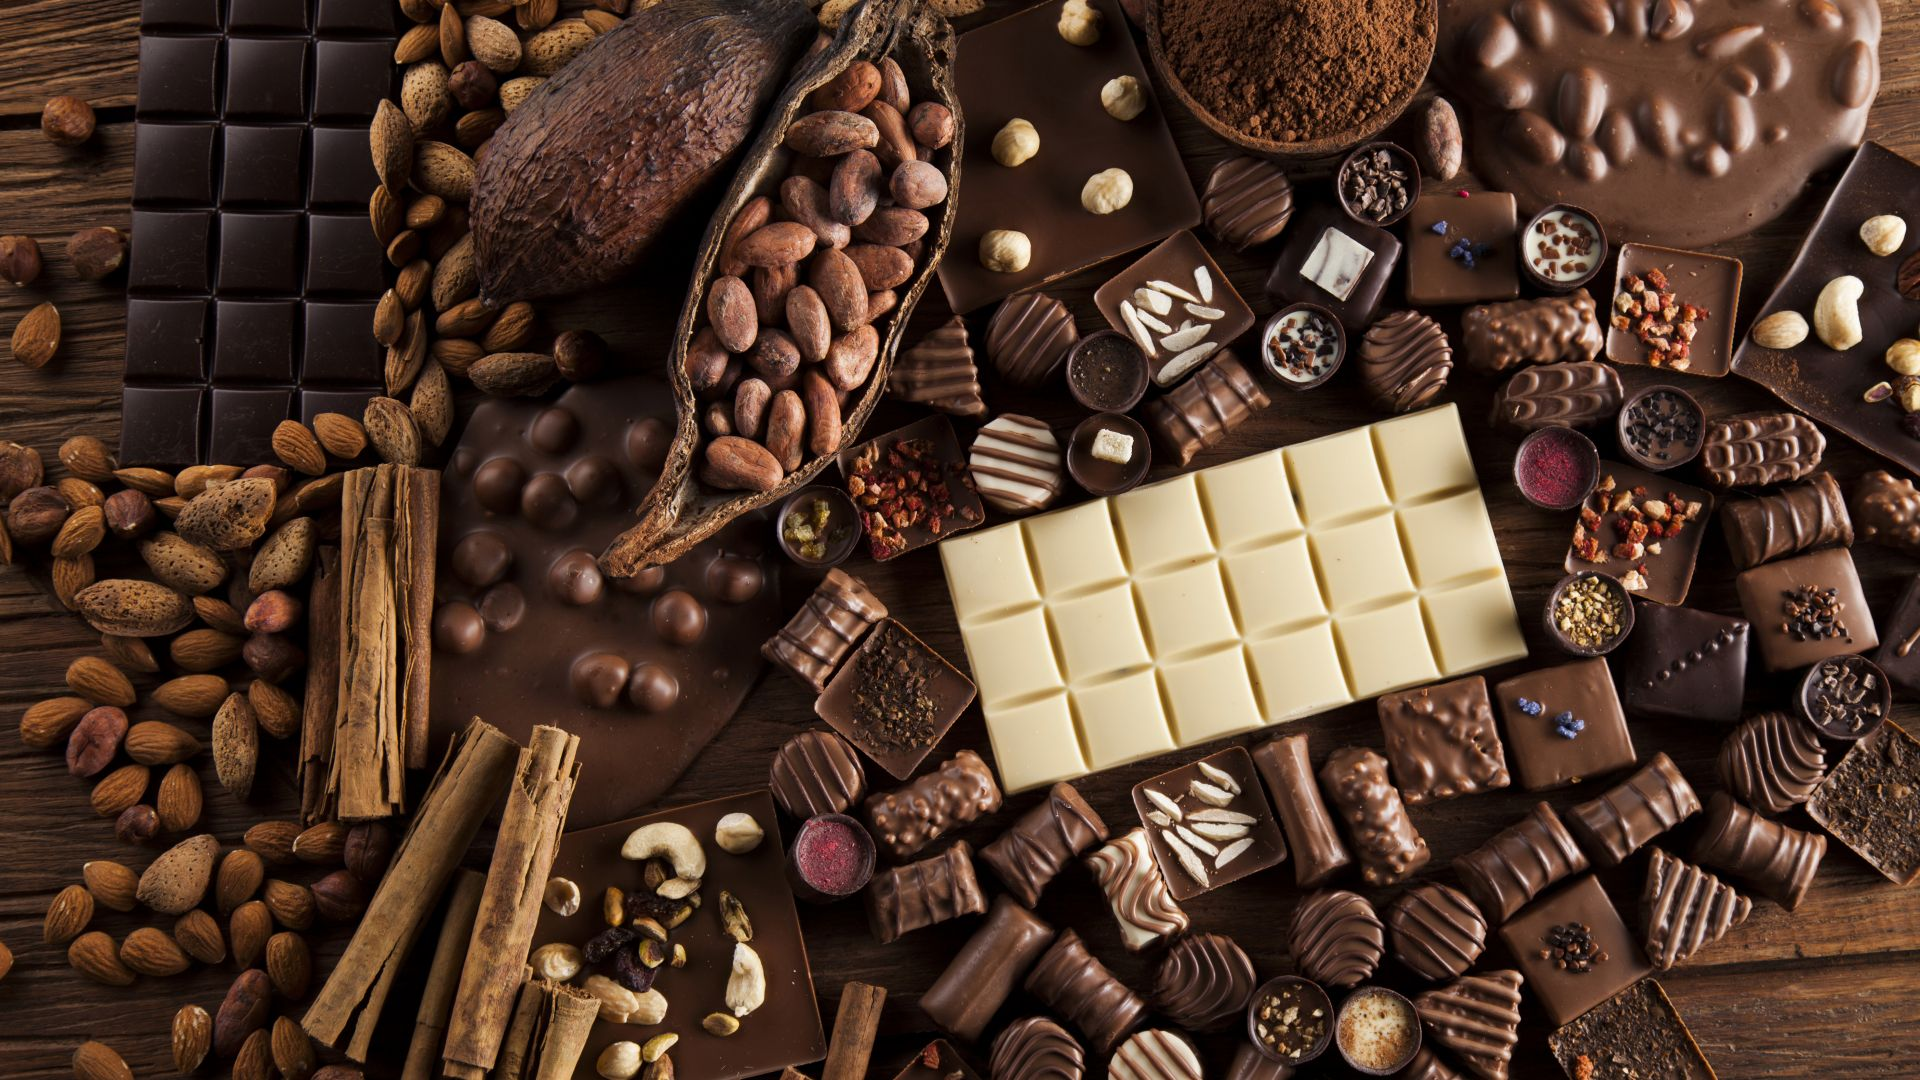 Wallpaper Chocolate Cocoa Delicious 5k Food 17848